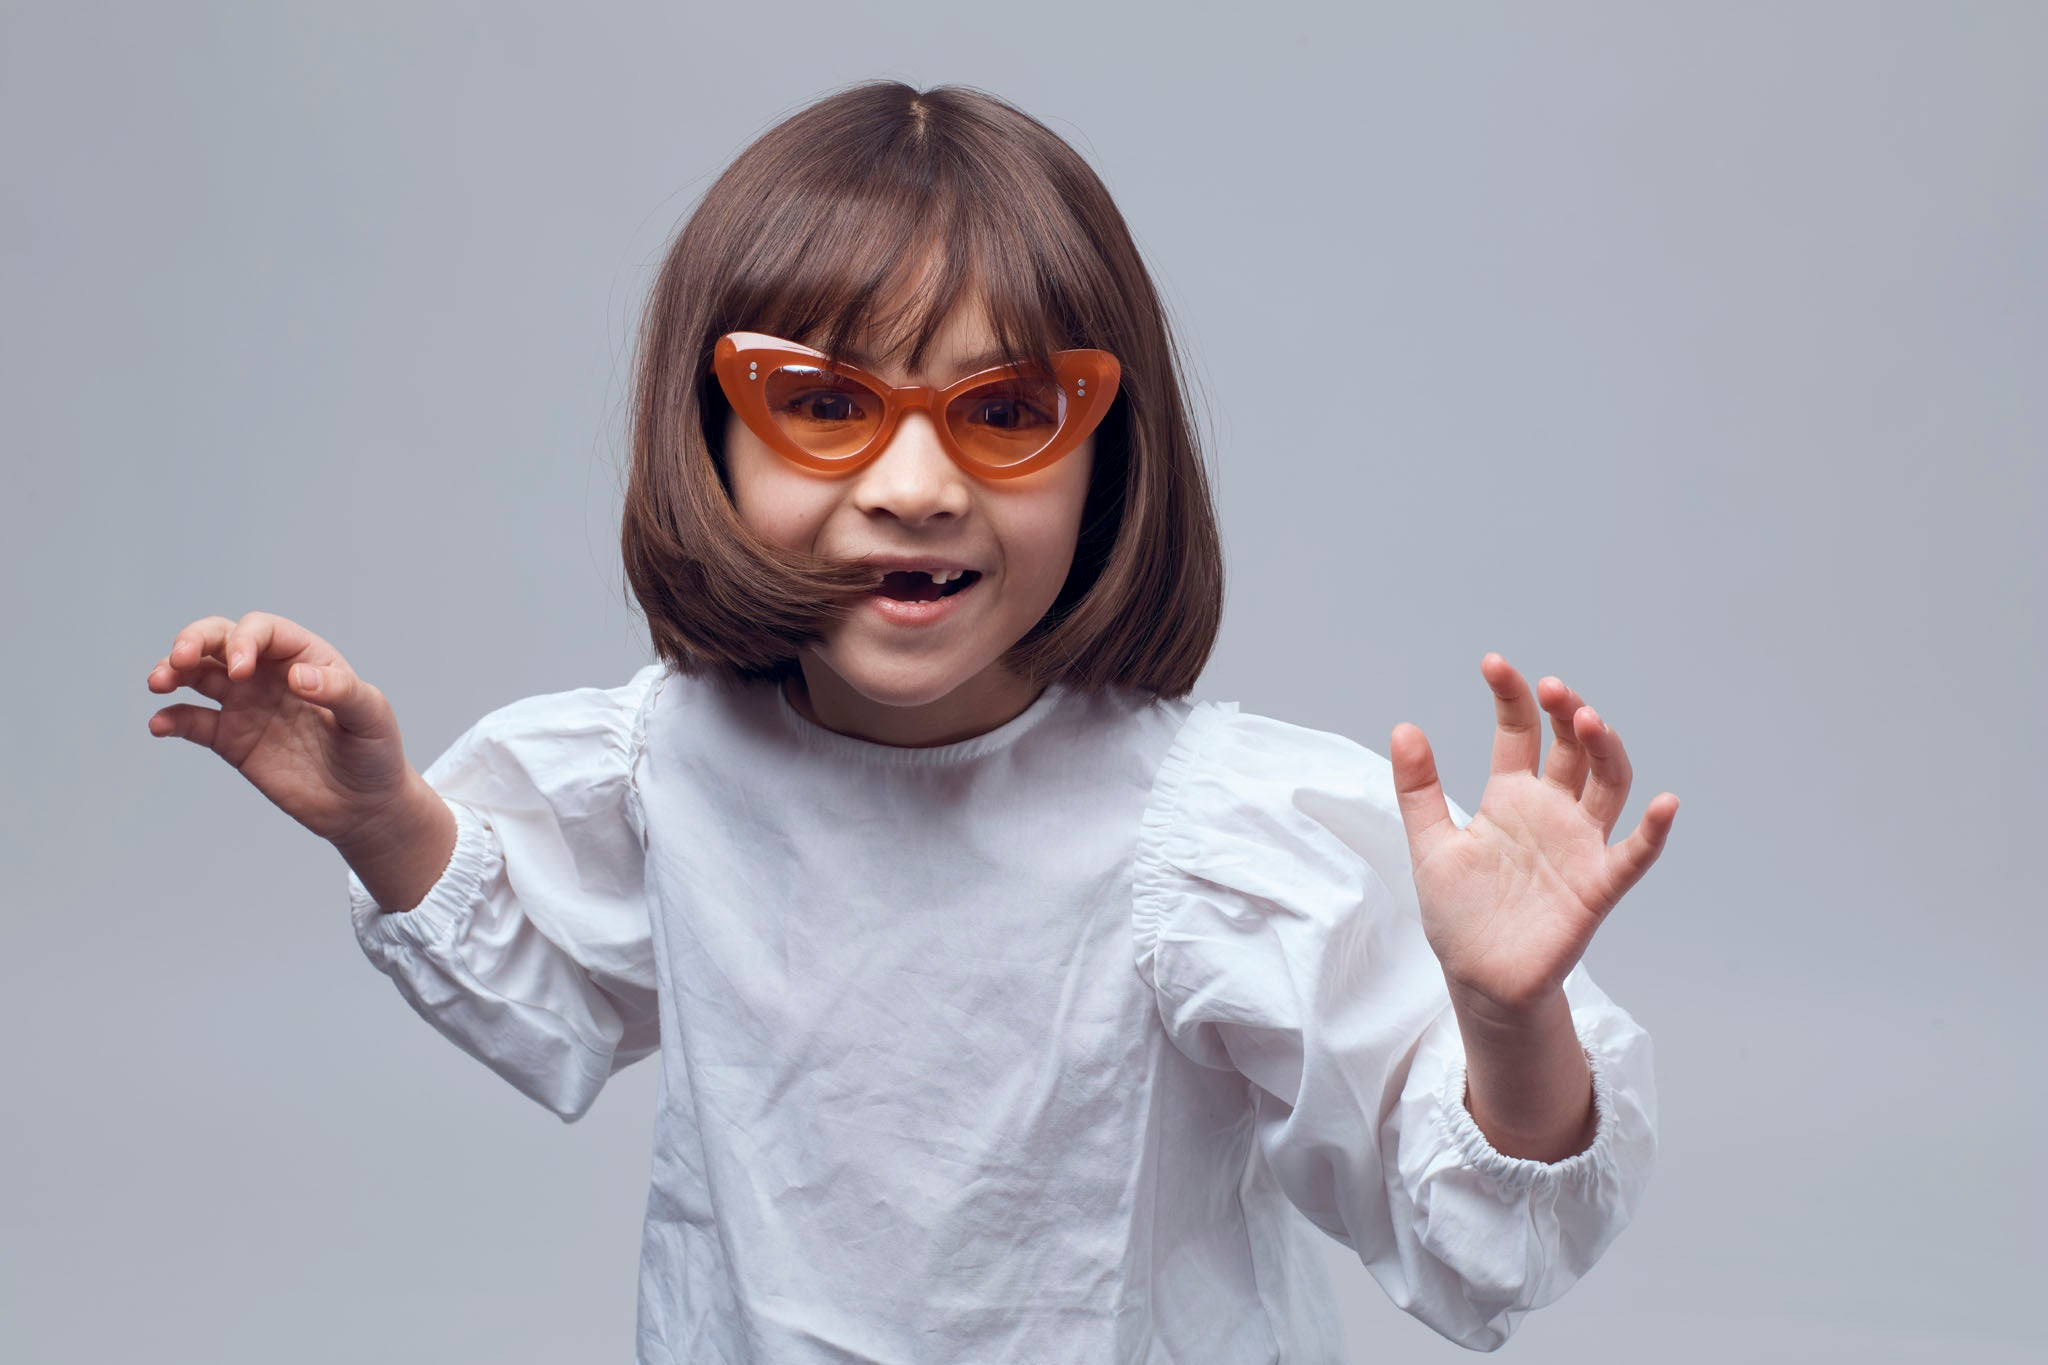 Sons_and_Daughters_Eyewear_Campaign_2019_Childrens_Kids_Sunglasses_Josie